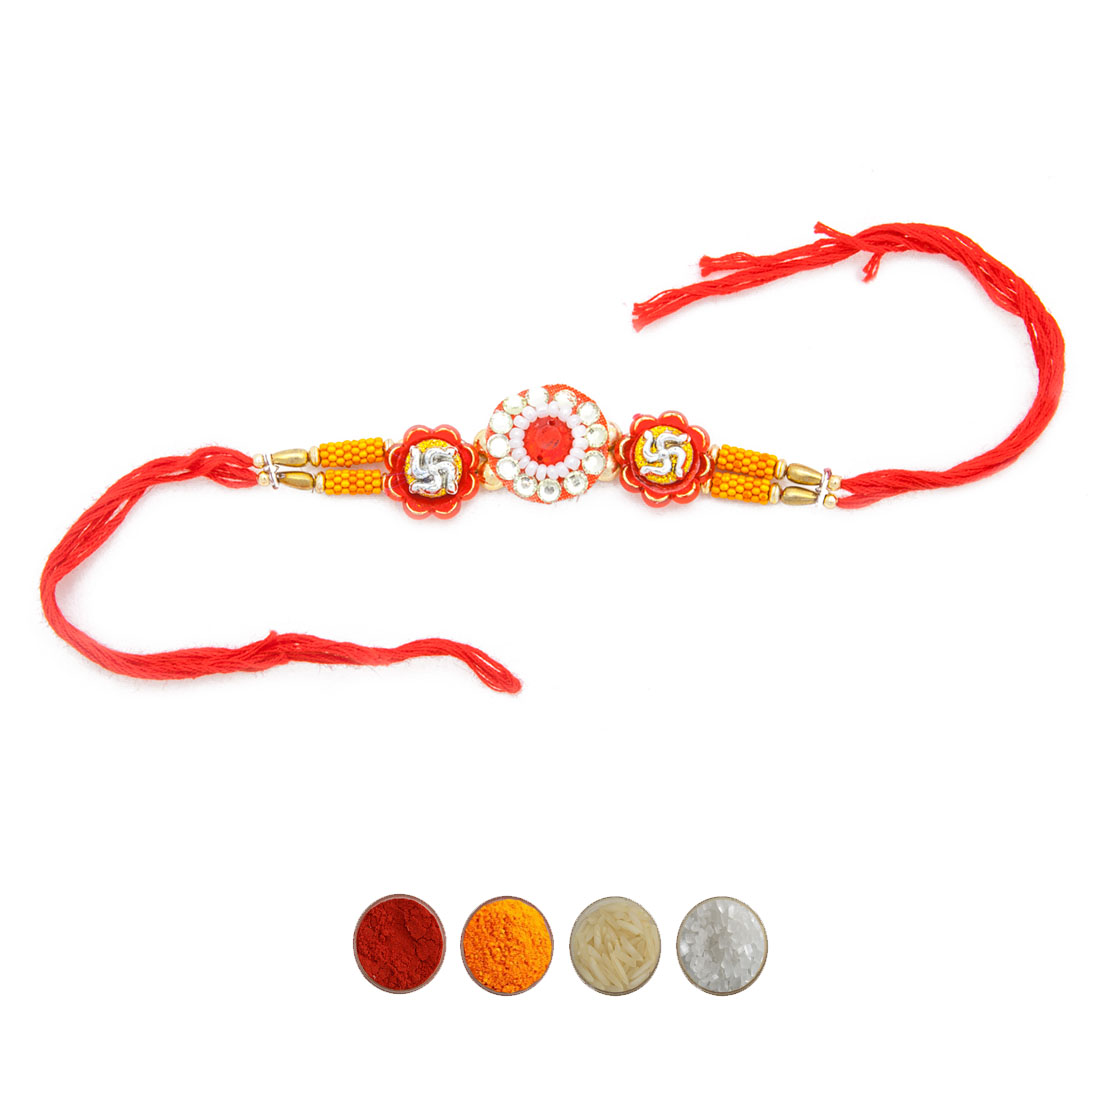 Traditional Rakhi Thread for Bhaiya